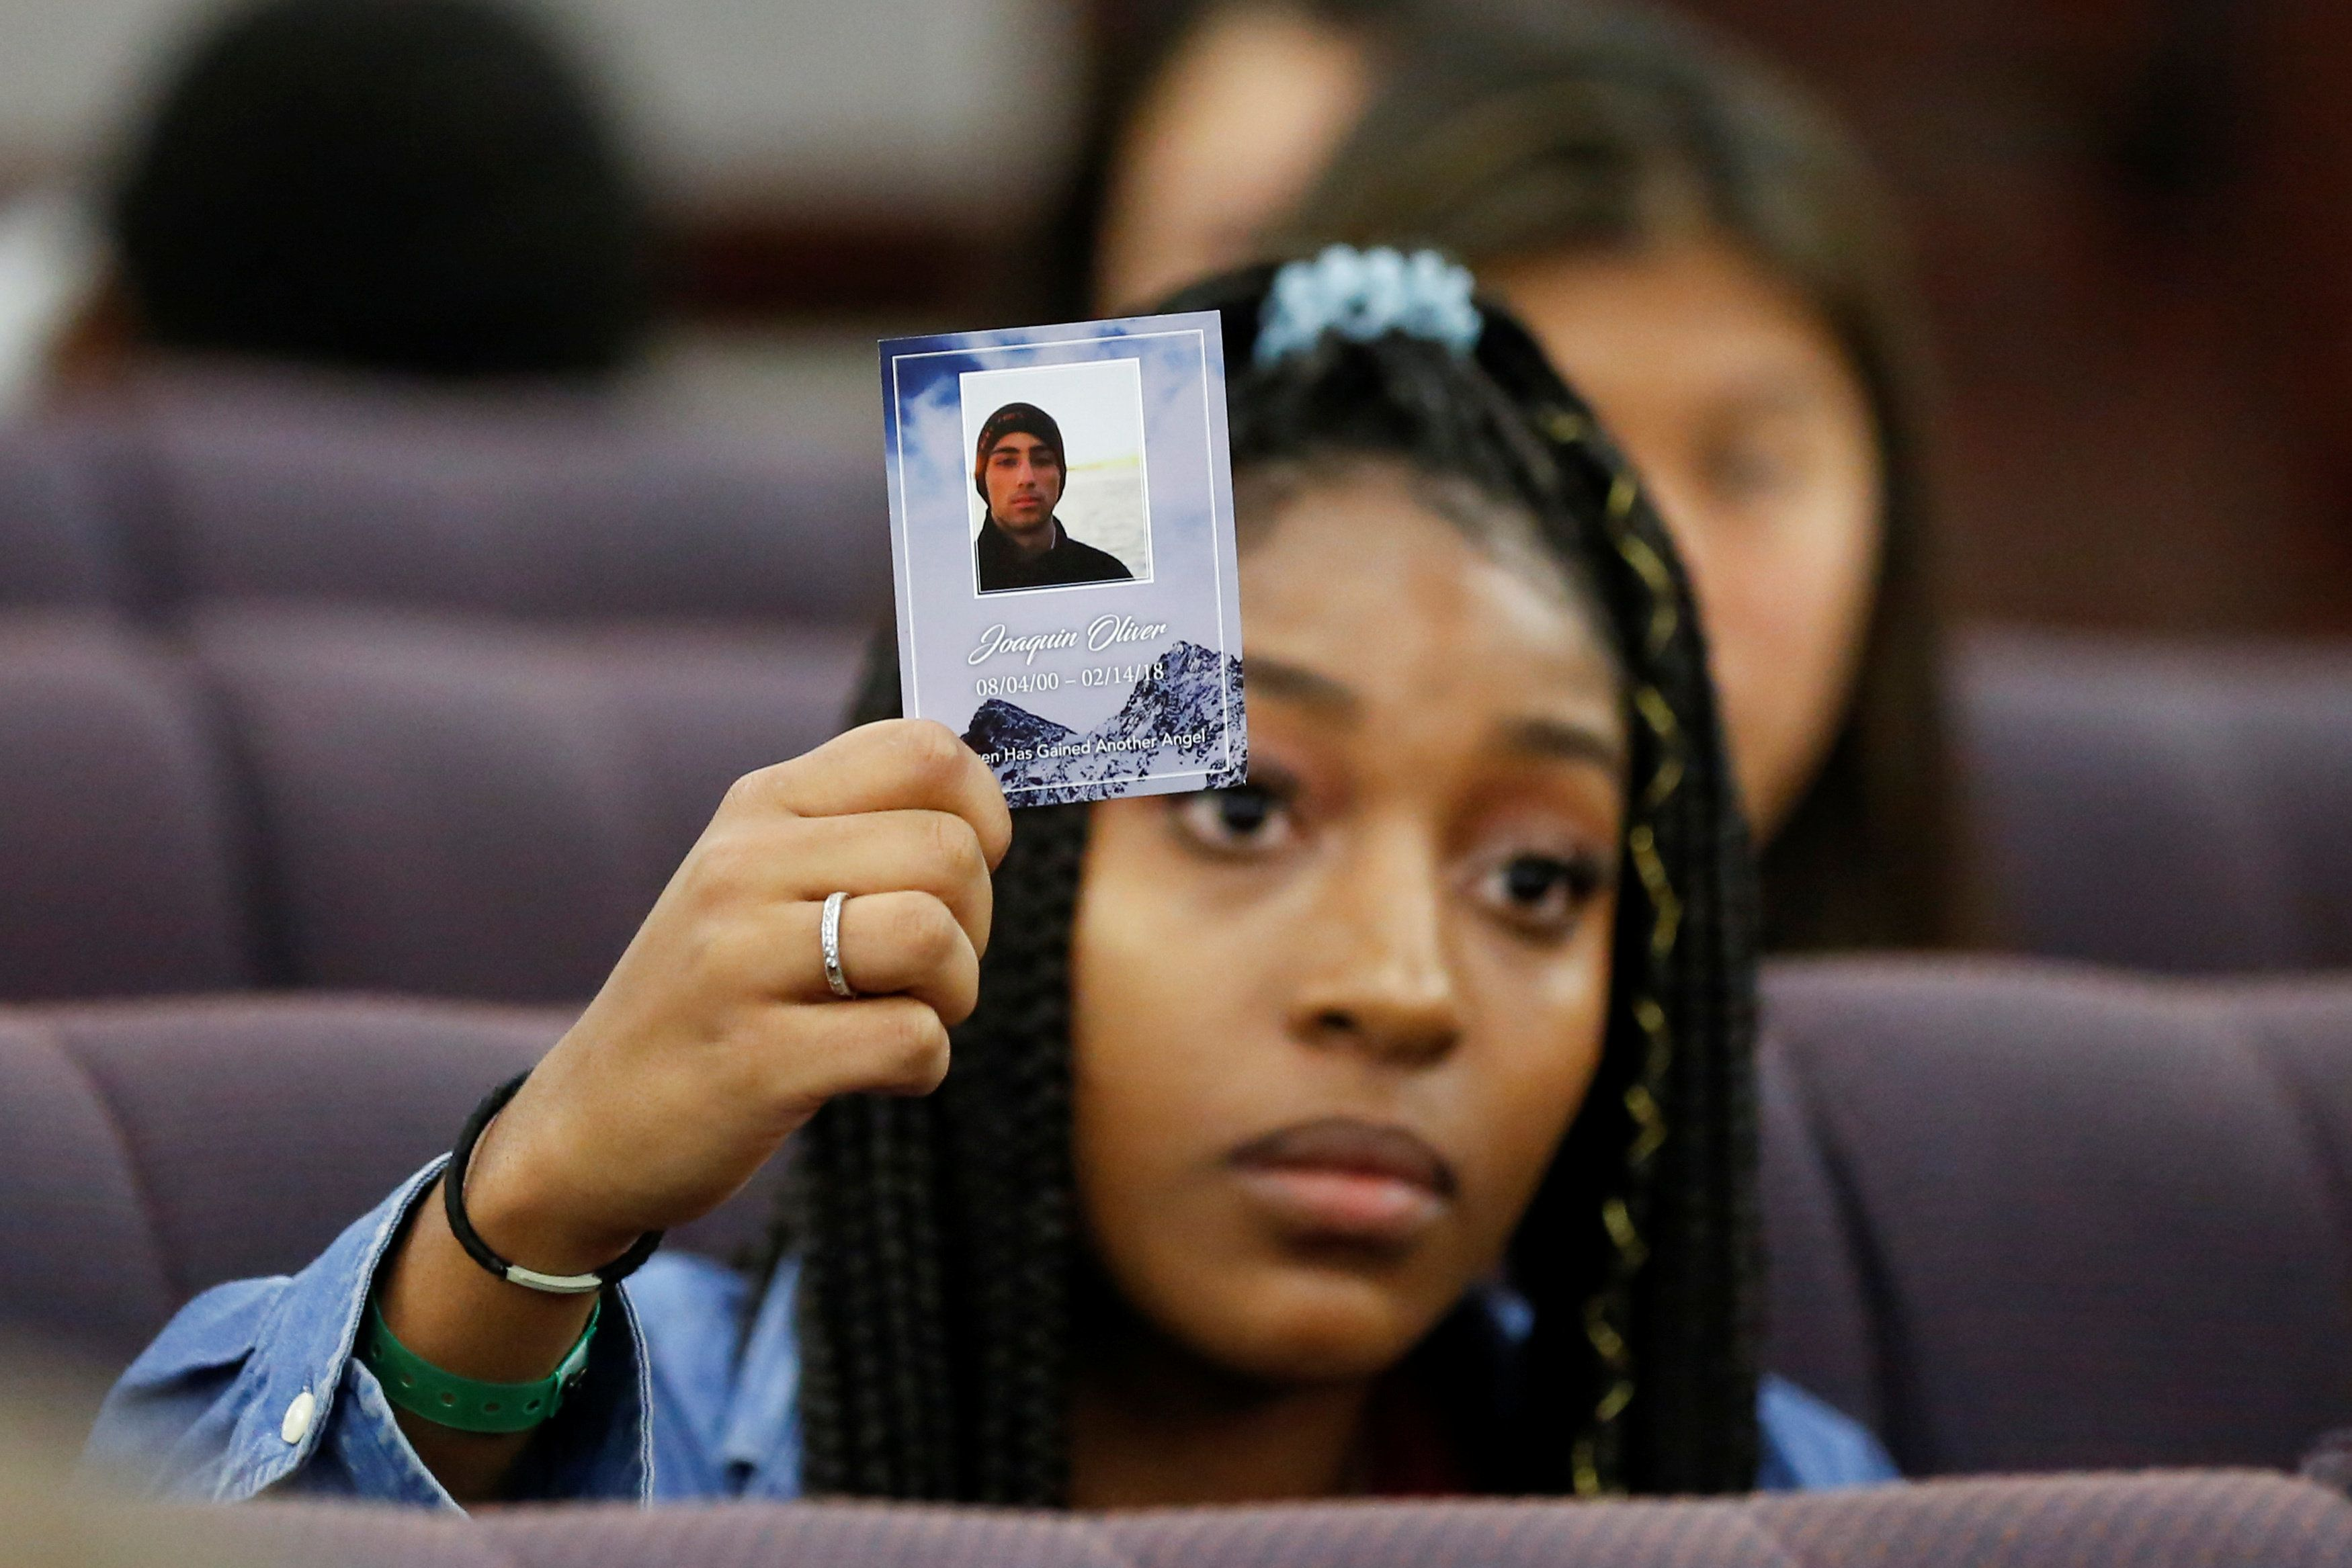 Tyra Hemans, a senior from Marjory Stoneman Douglas High School, holds a photo of her friend Joaquin Oliver, who died during